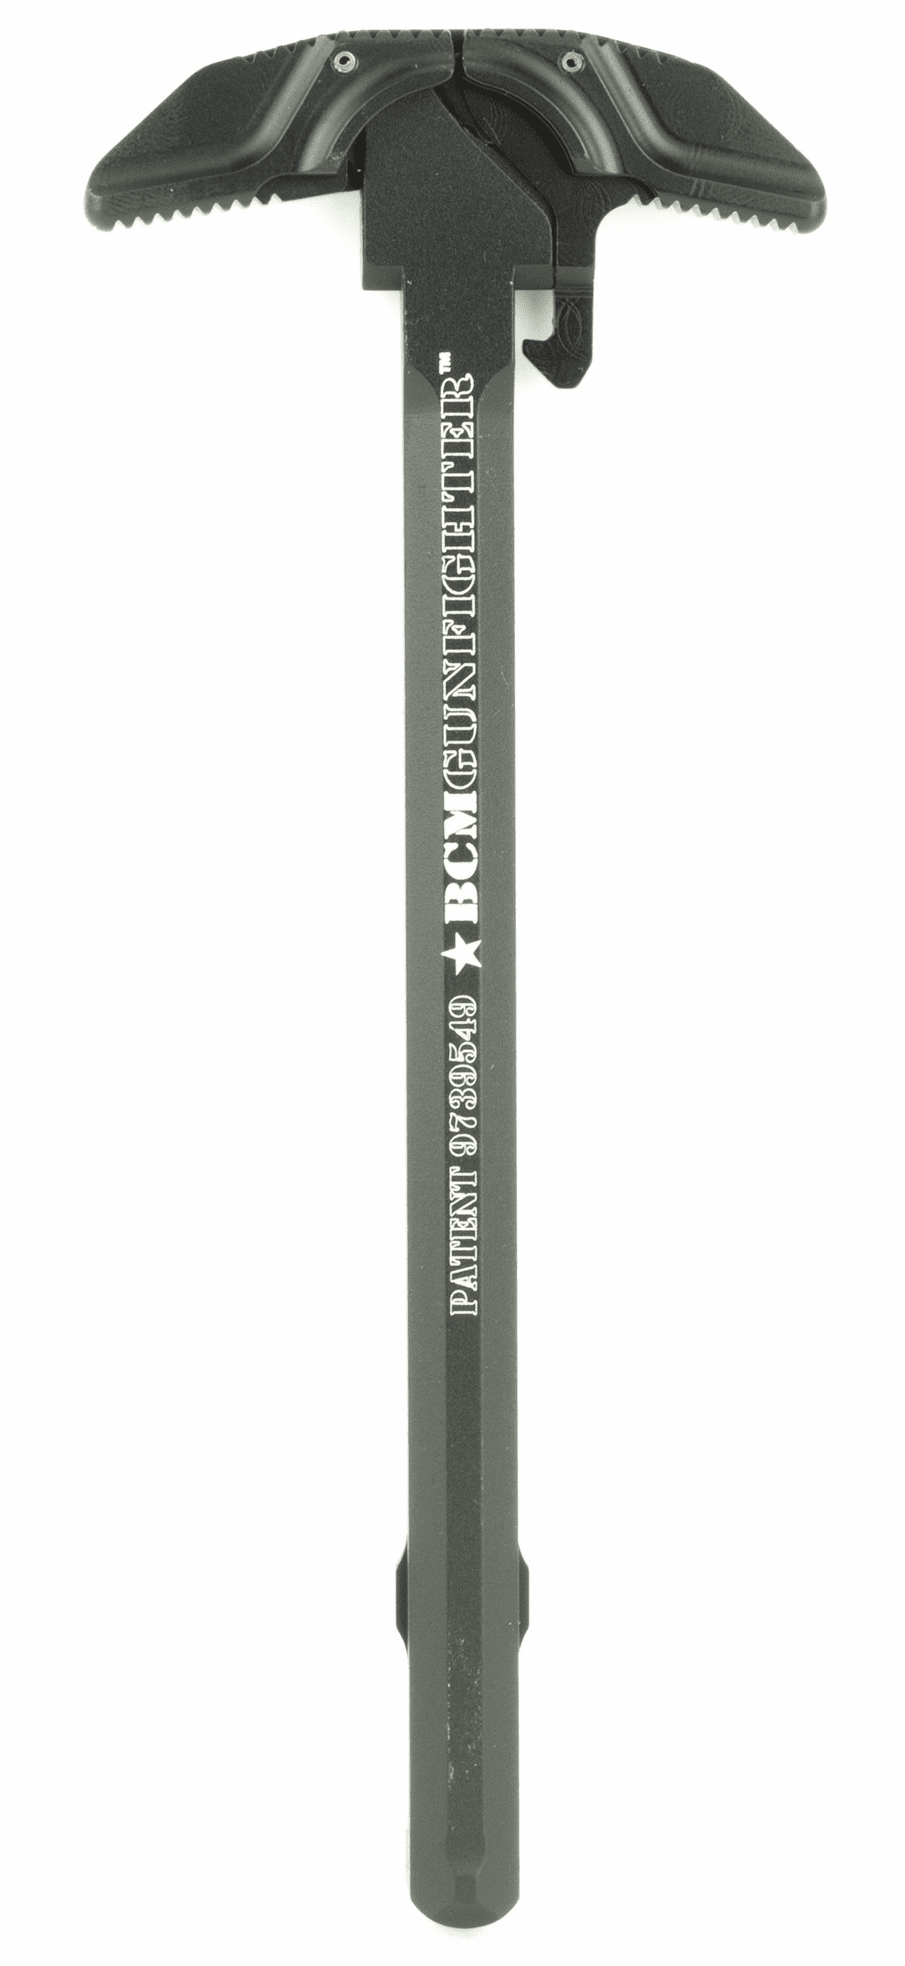 BCM GUNFIGHTER Ambidextrous Extended Charging Handle - 5.56